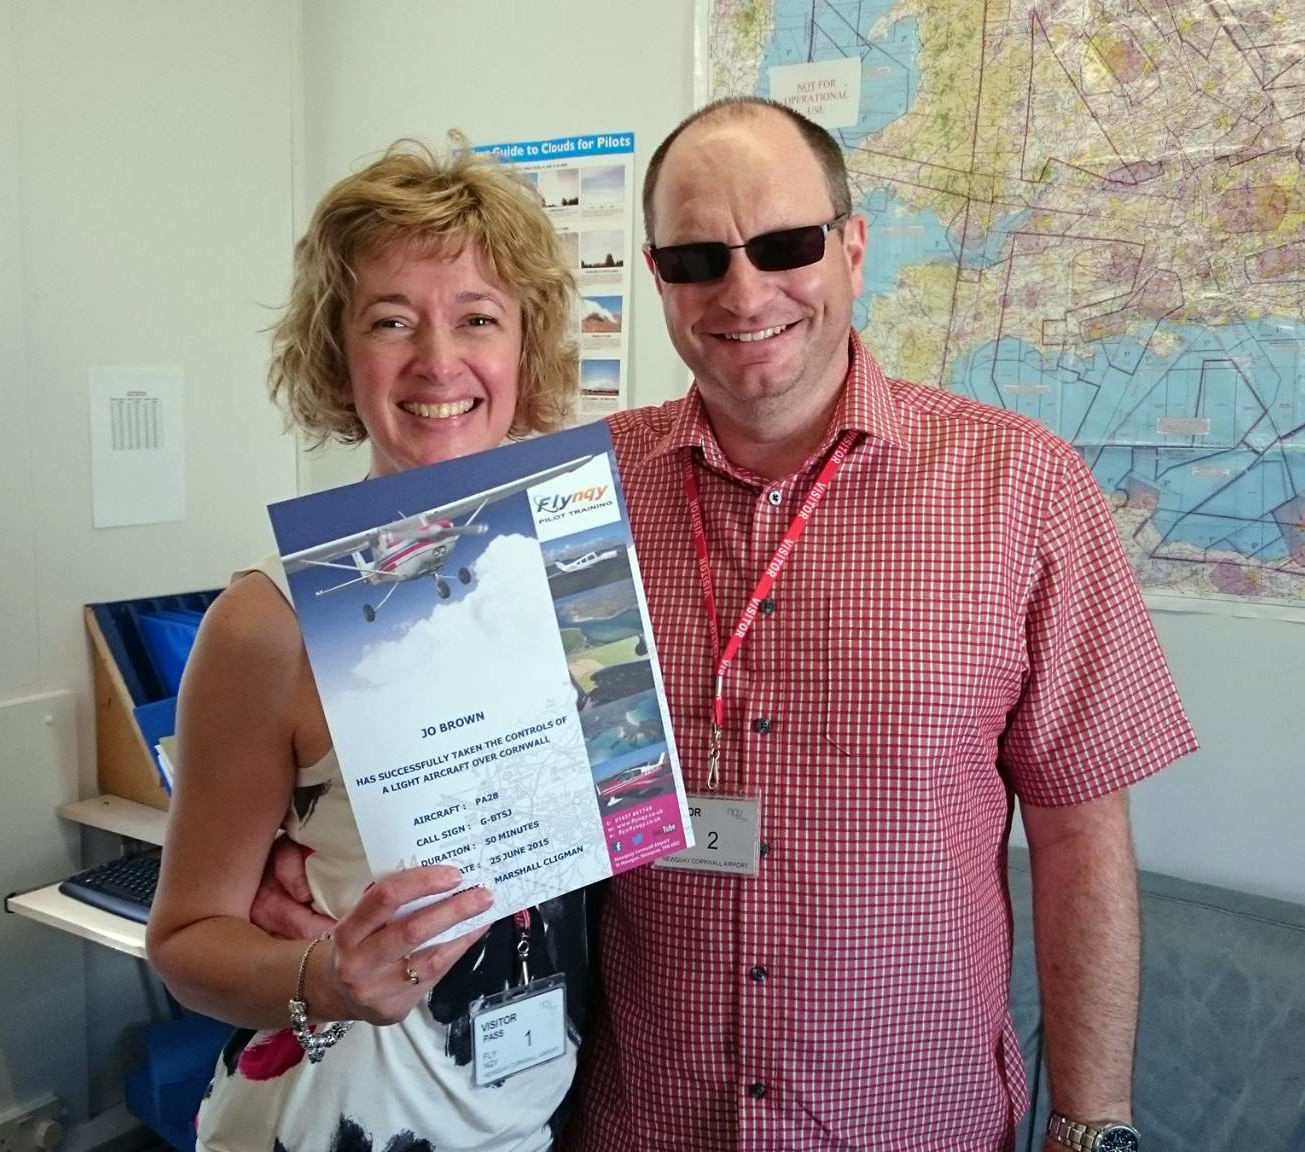 Receiving a flight certificate after the Trial Flight Experience